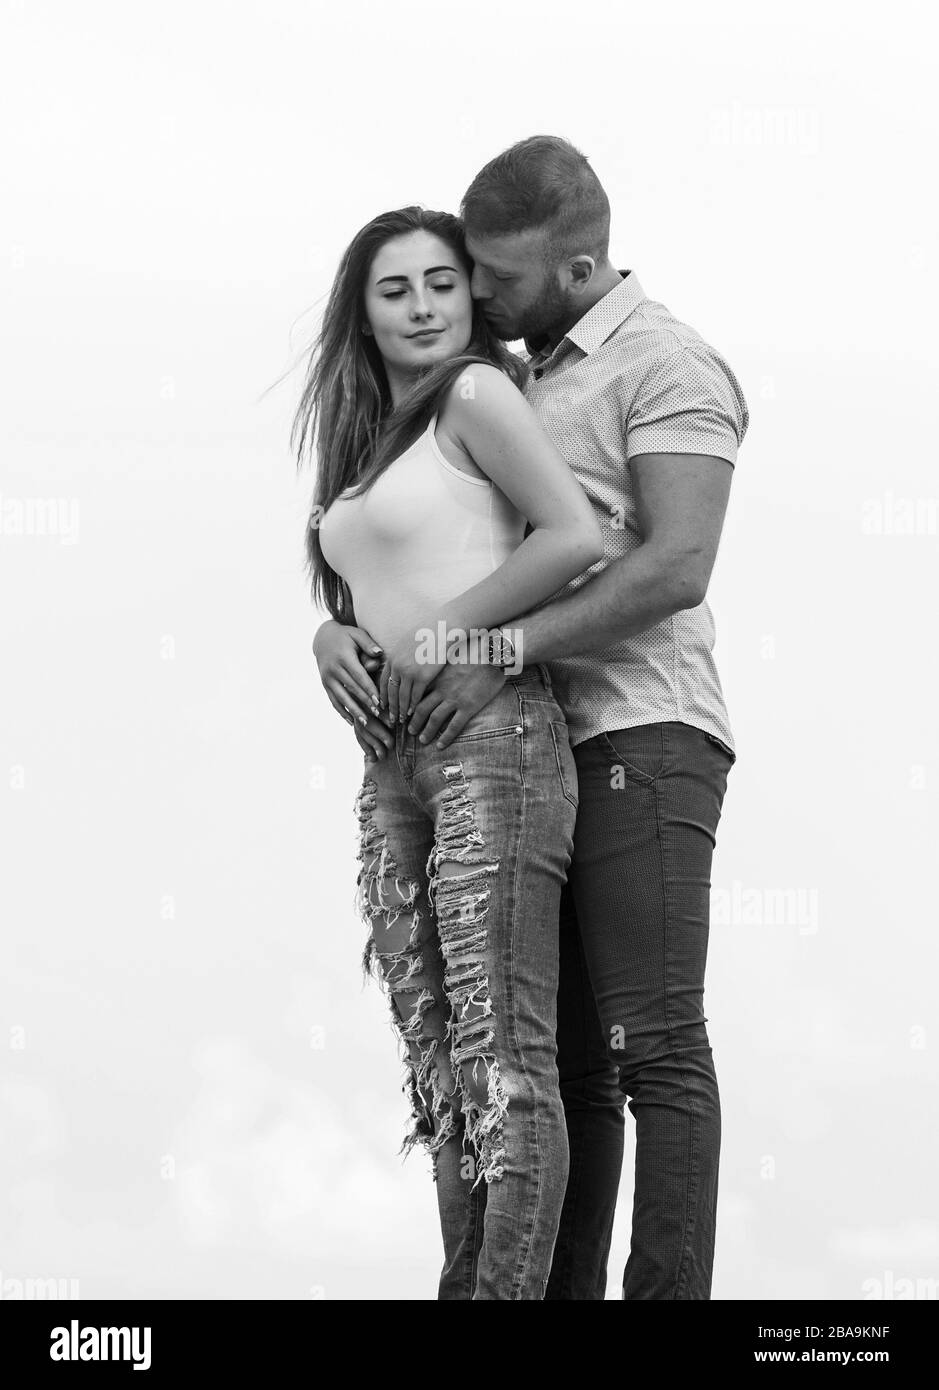 True Love Cute Relationship Man And Woman Cuddle Nature Background Supporting Her Family Love Devotion And Trust Couple In Love Together Forever We Two Love Story Romantic Relations Stock Photo Alamy